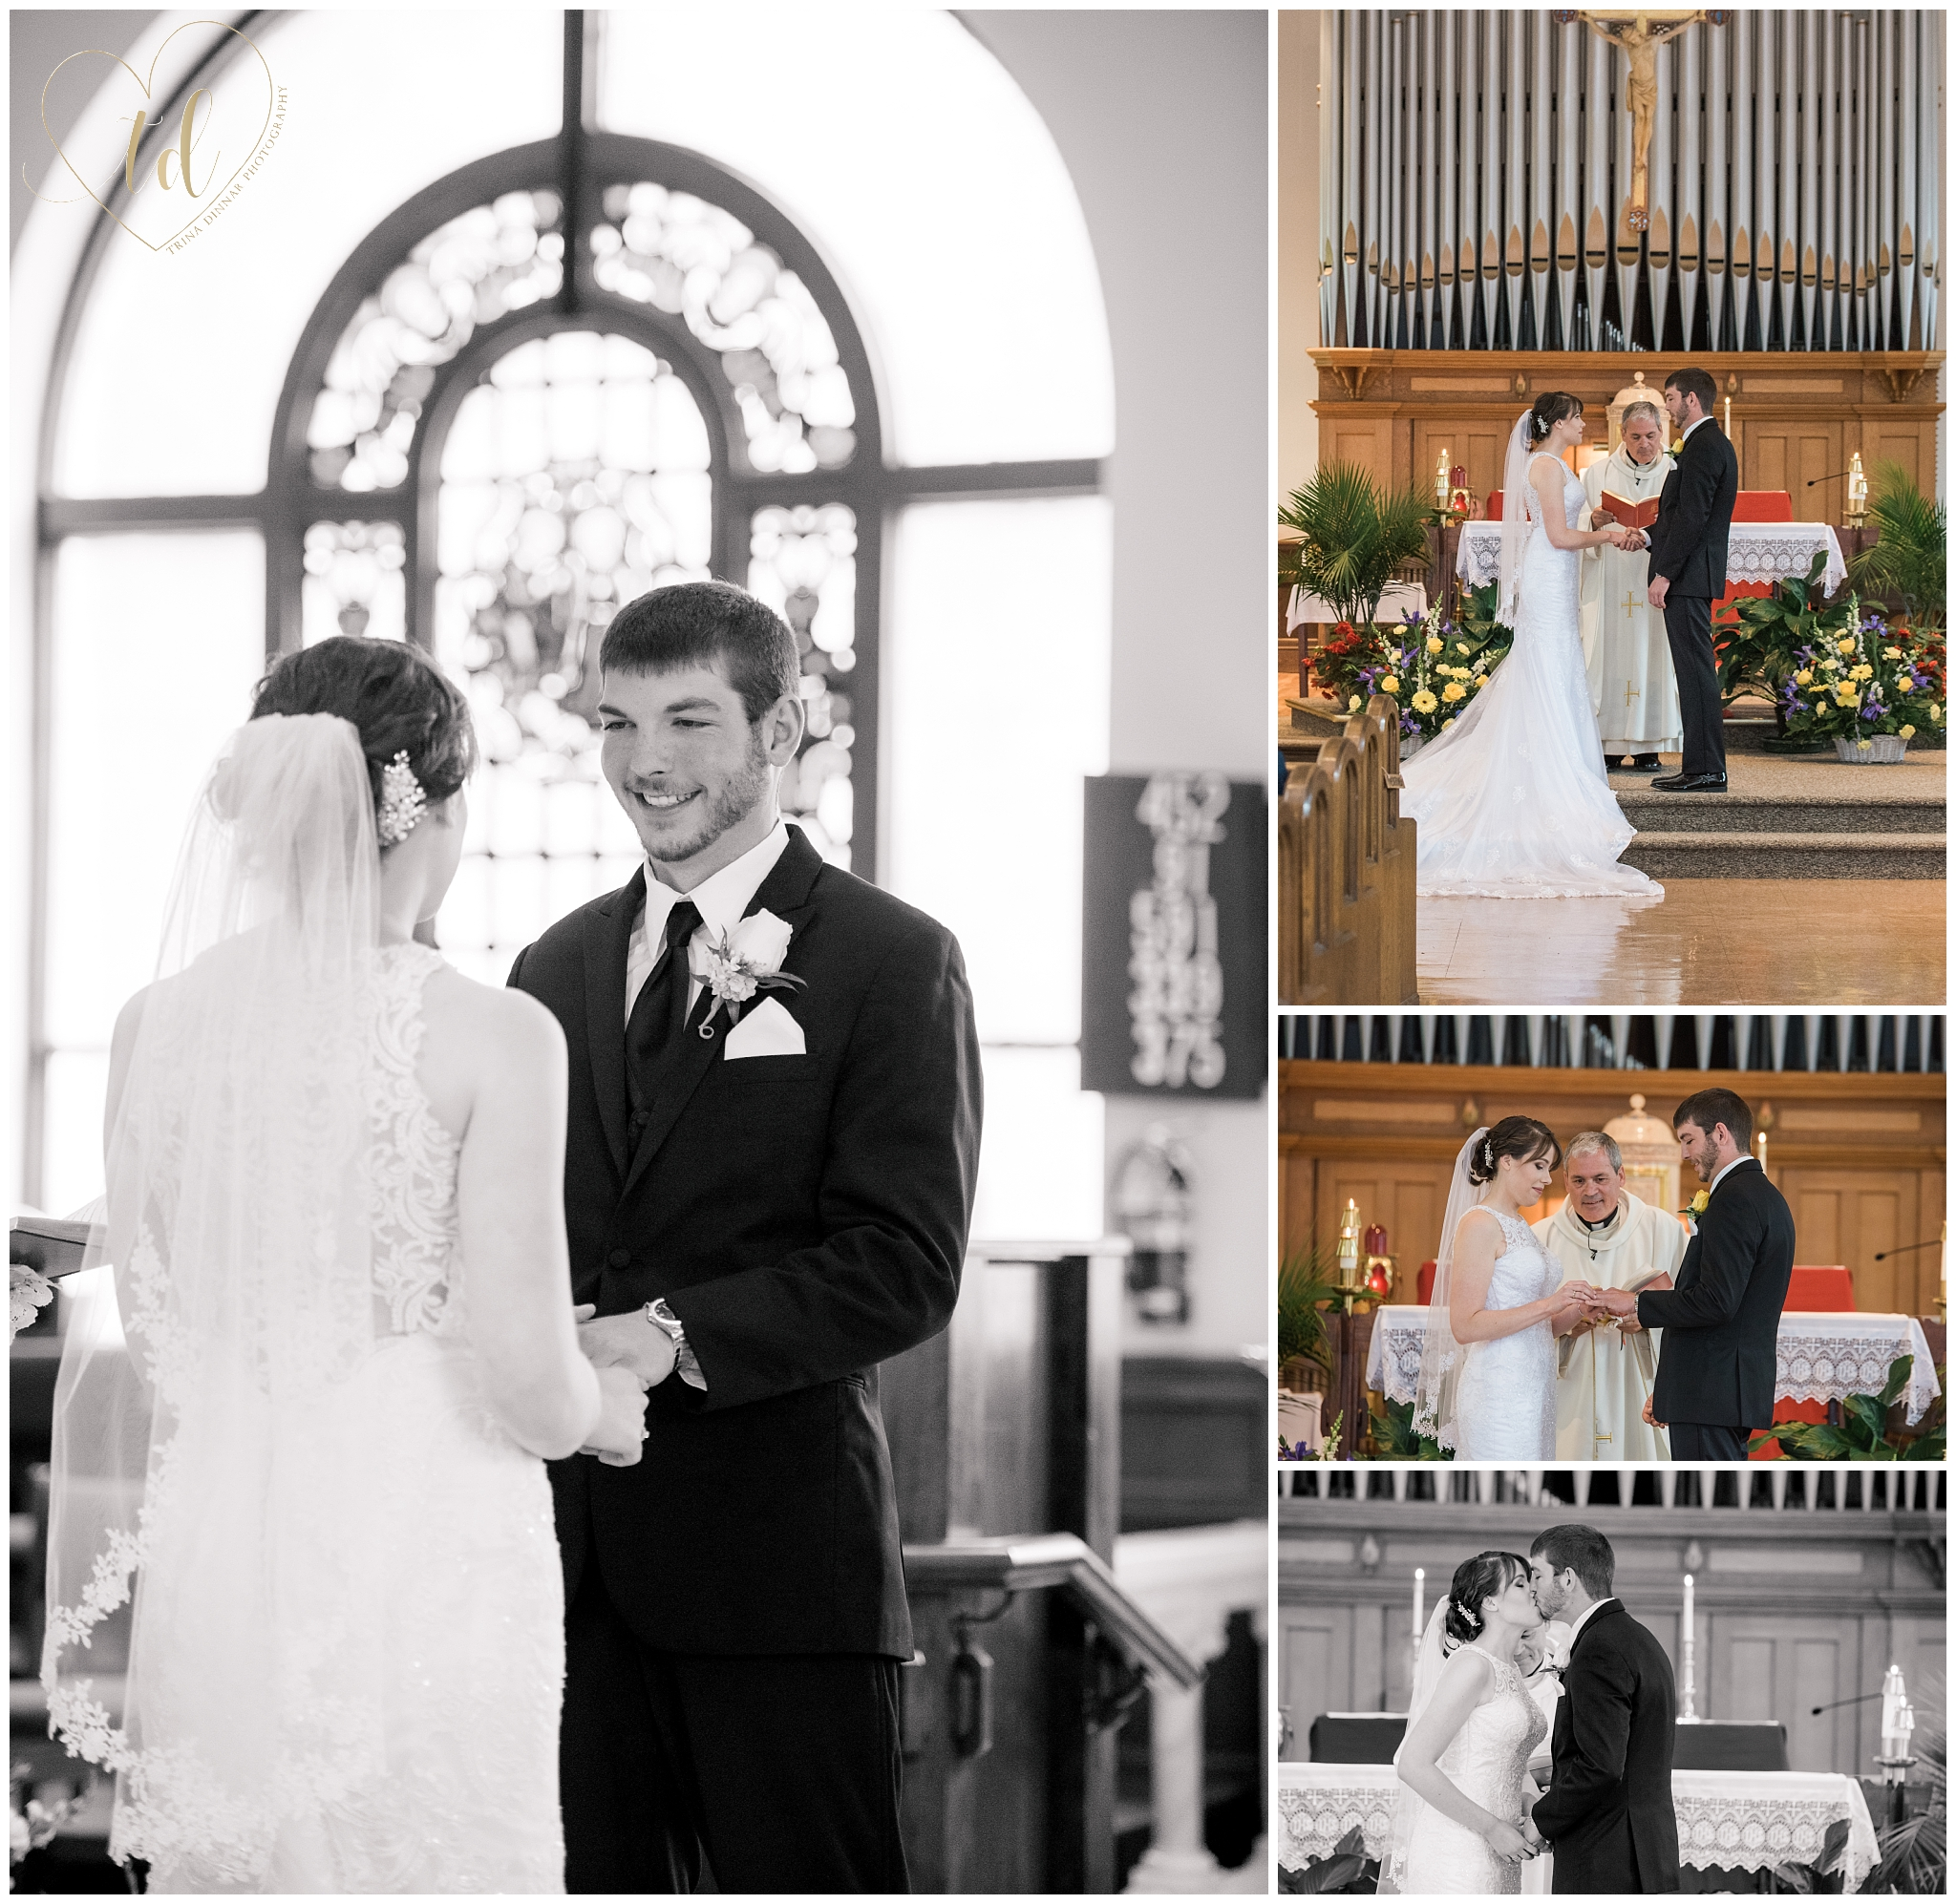 Maine Wedding ceremony at the Sacred Heart Church in Yarmouth, Maine.